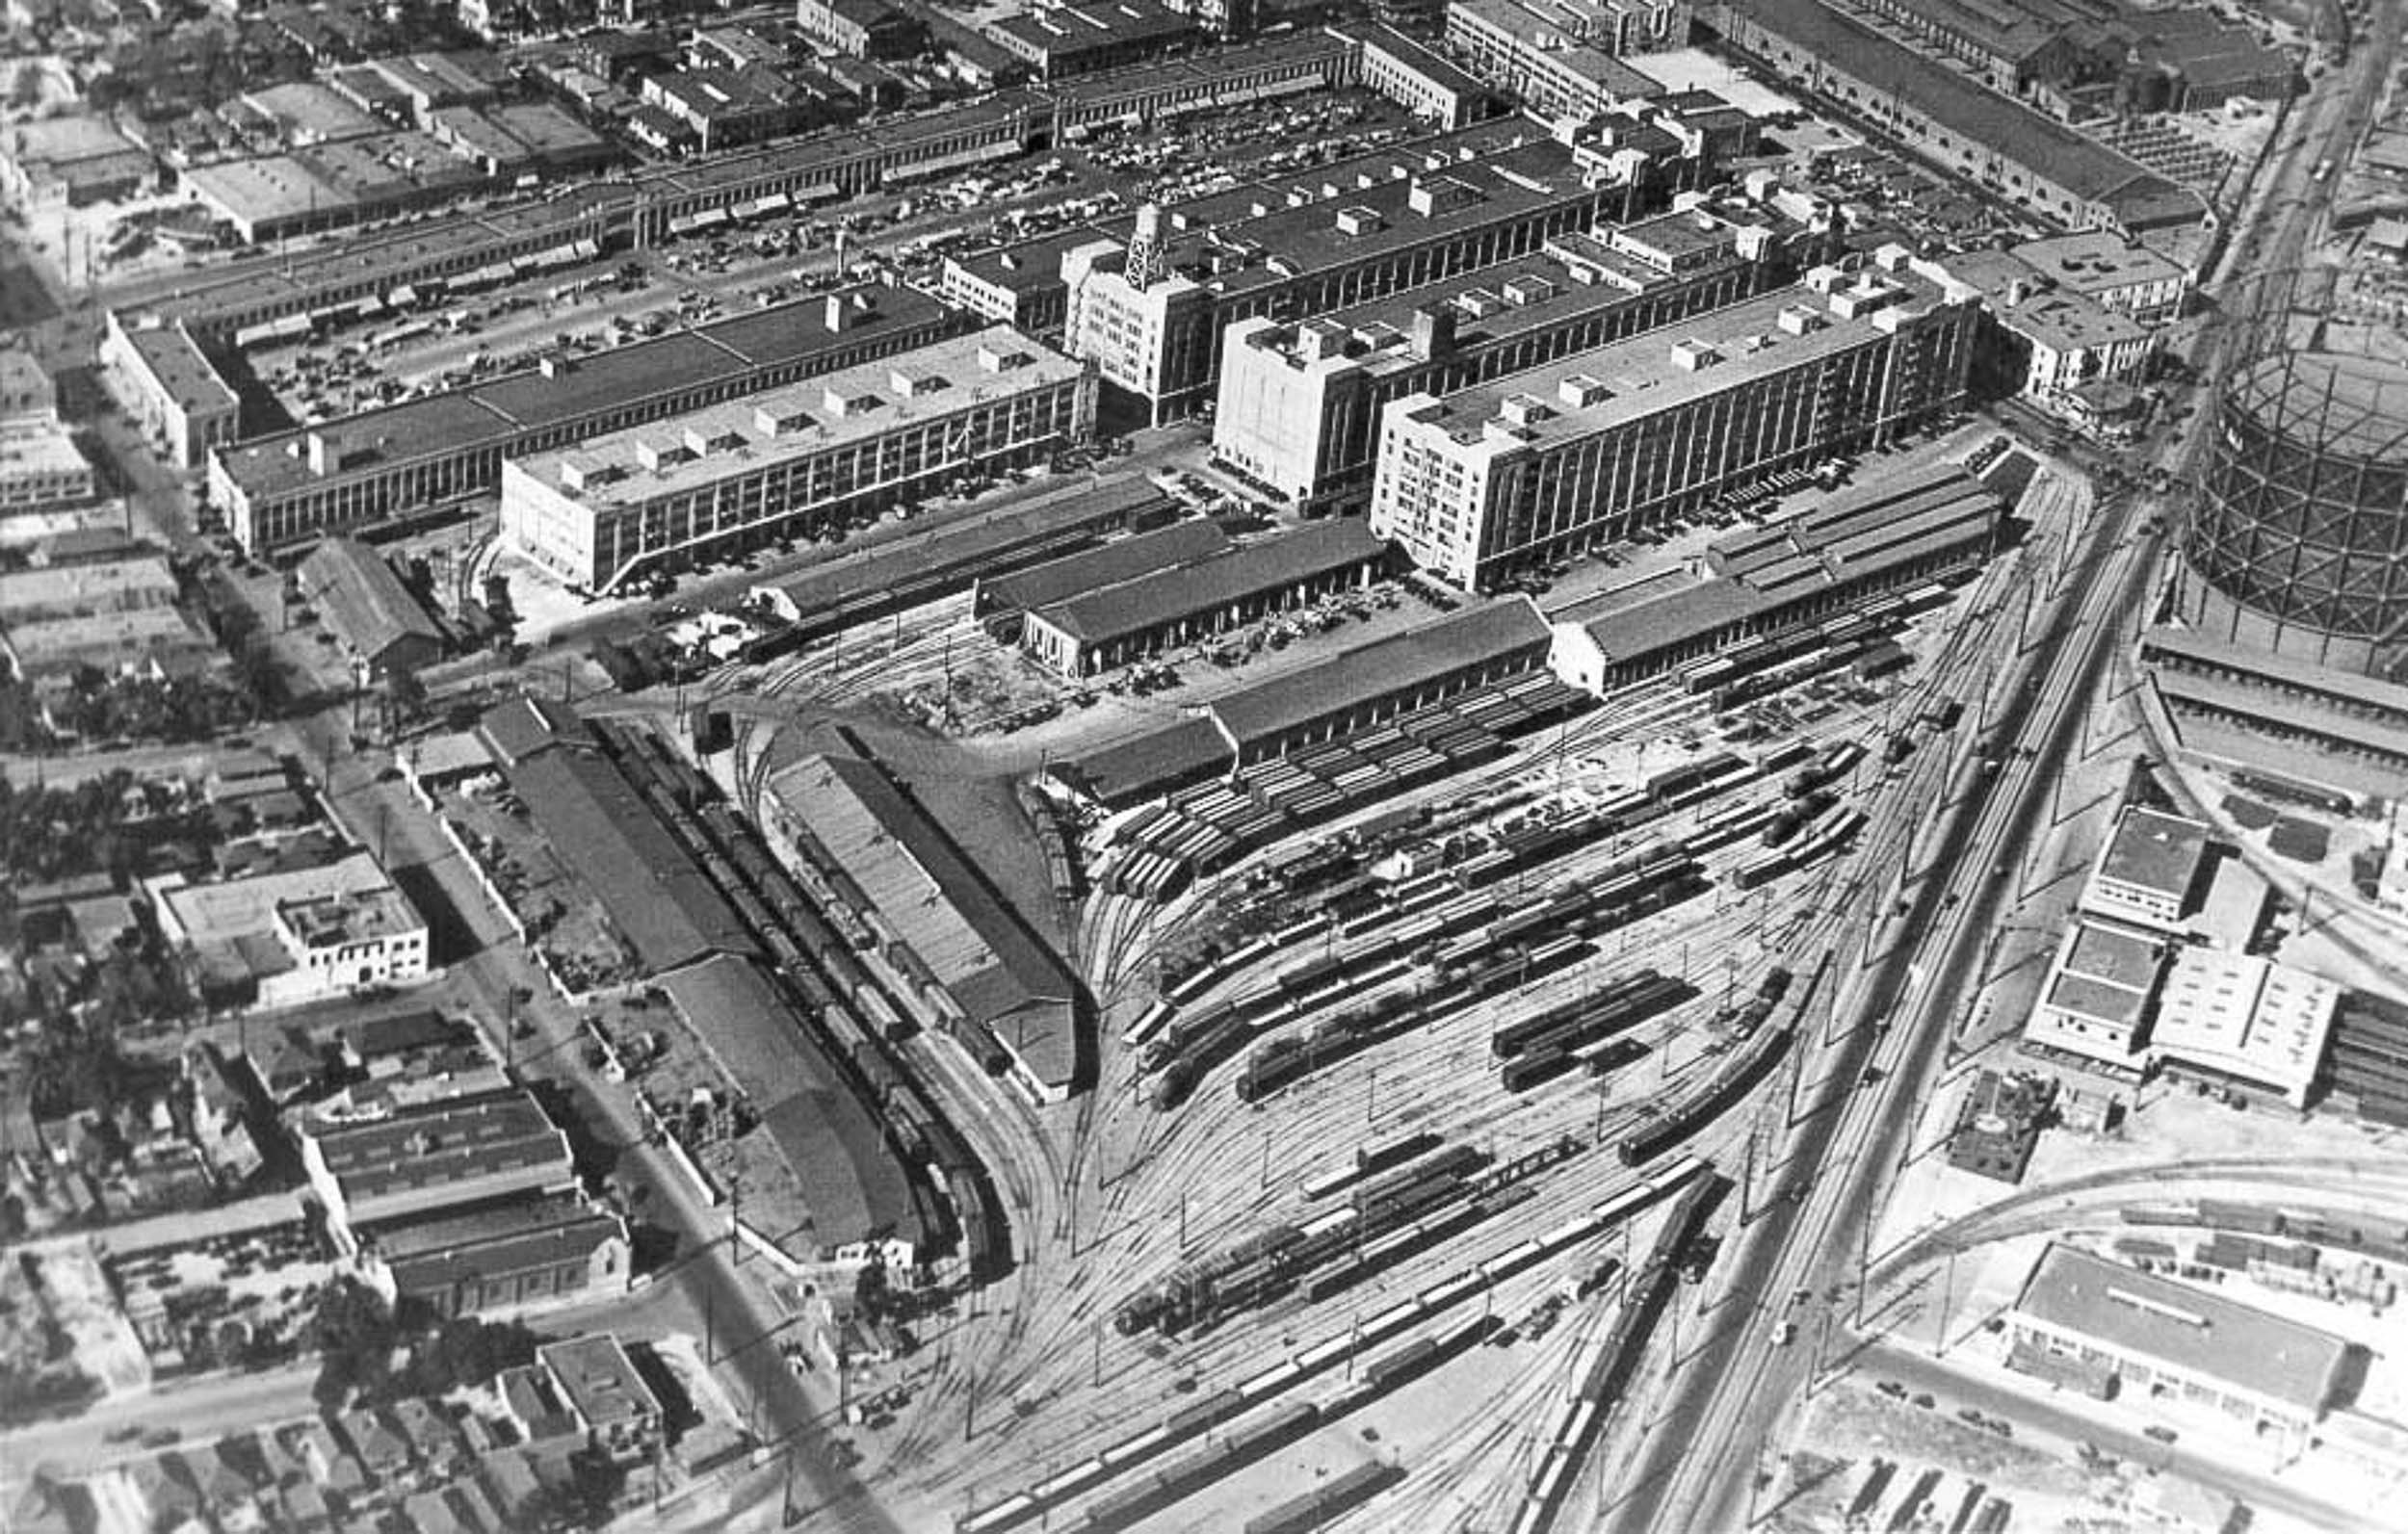 black and white aerial view of the original ROW DTLA project site